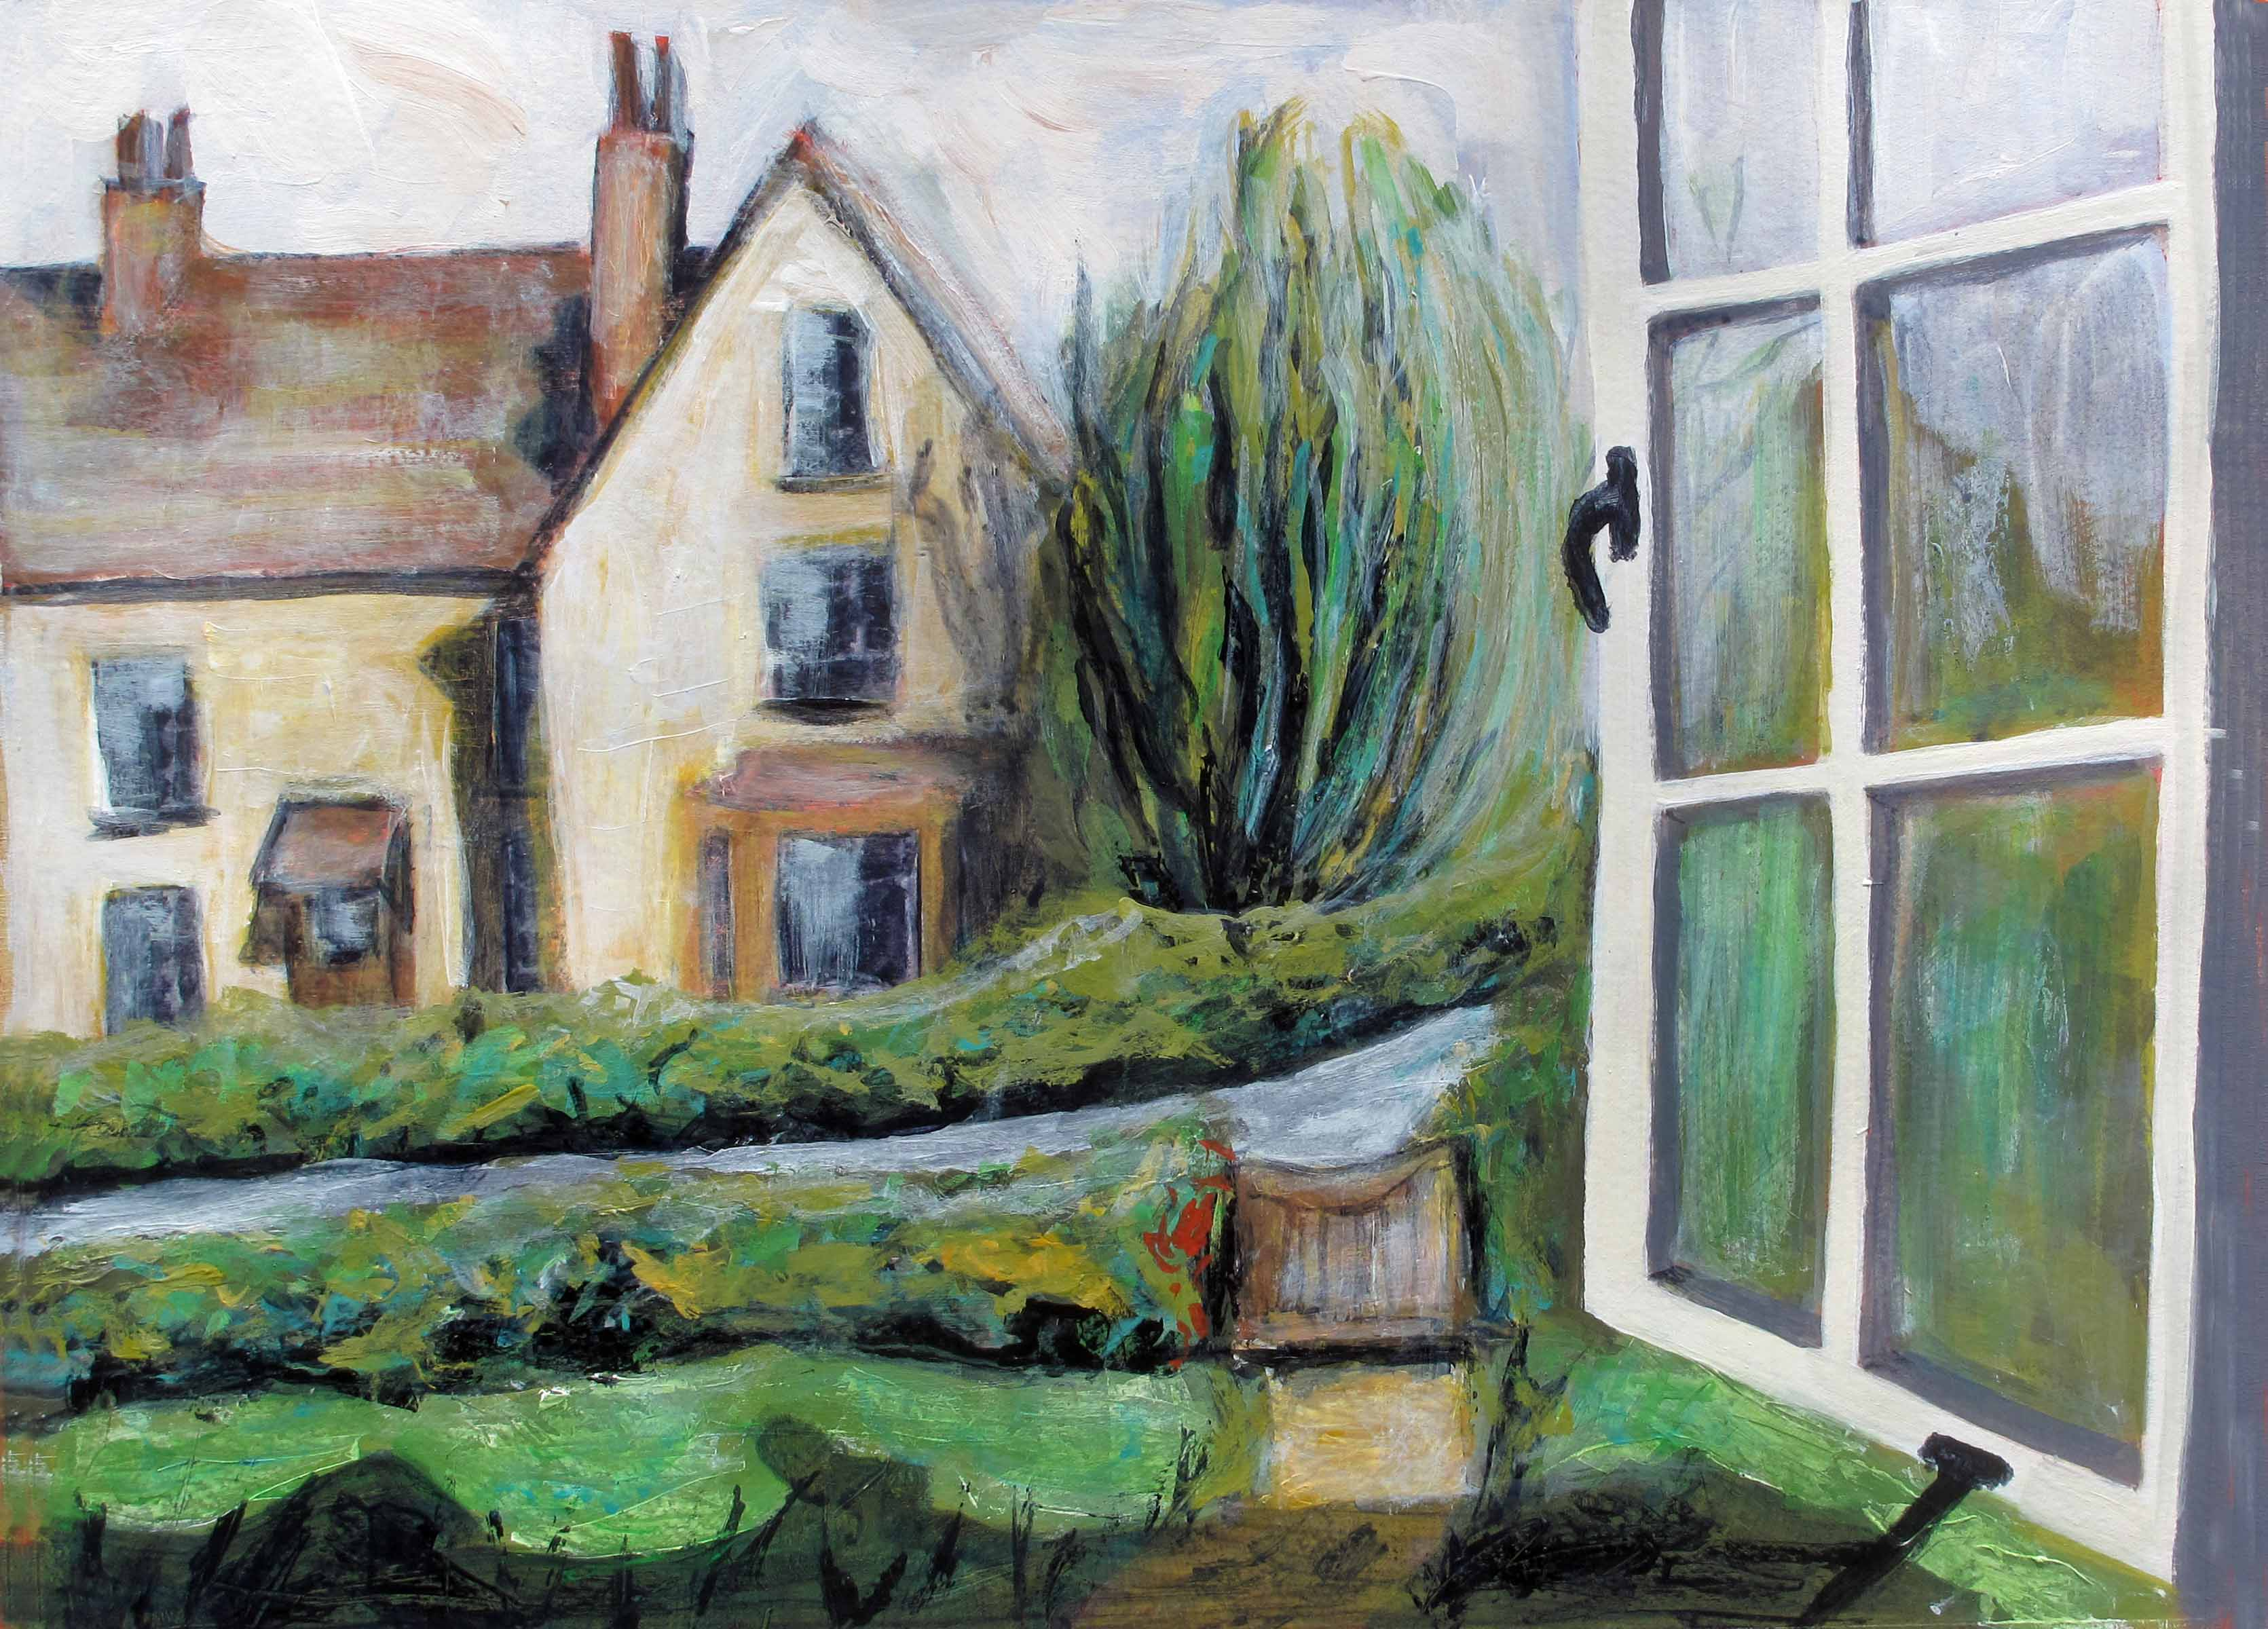 3341x2400 Exercise View From A Window Or Doorway (Painting) - Window View Painting